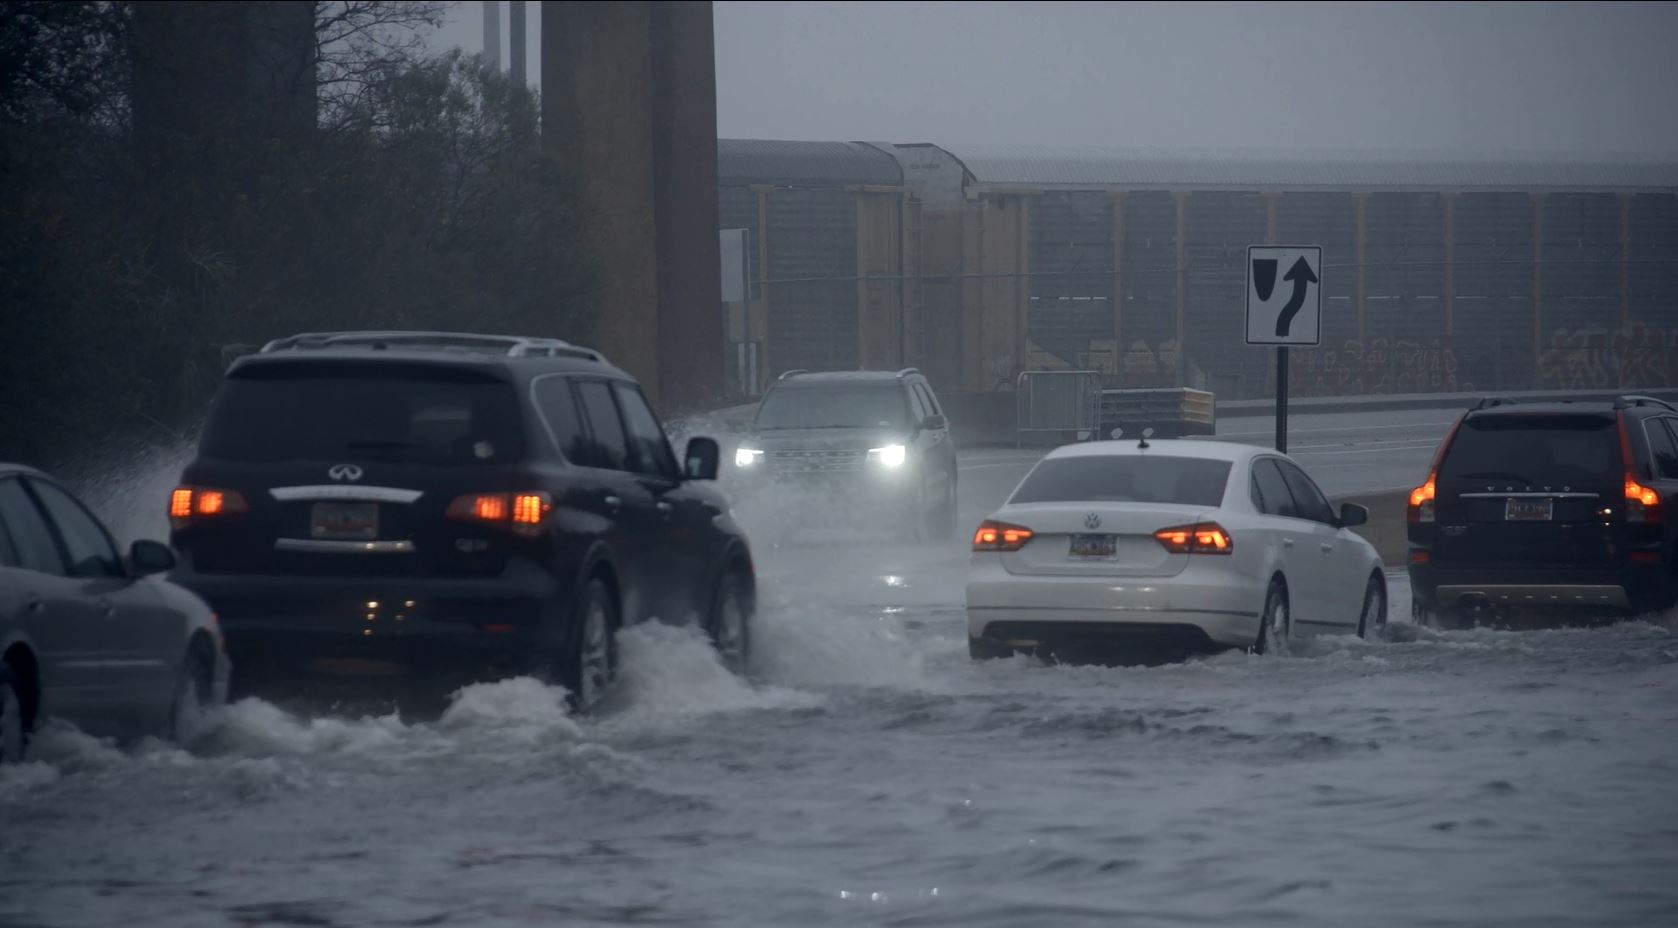 Traffic driving through high water in a city.